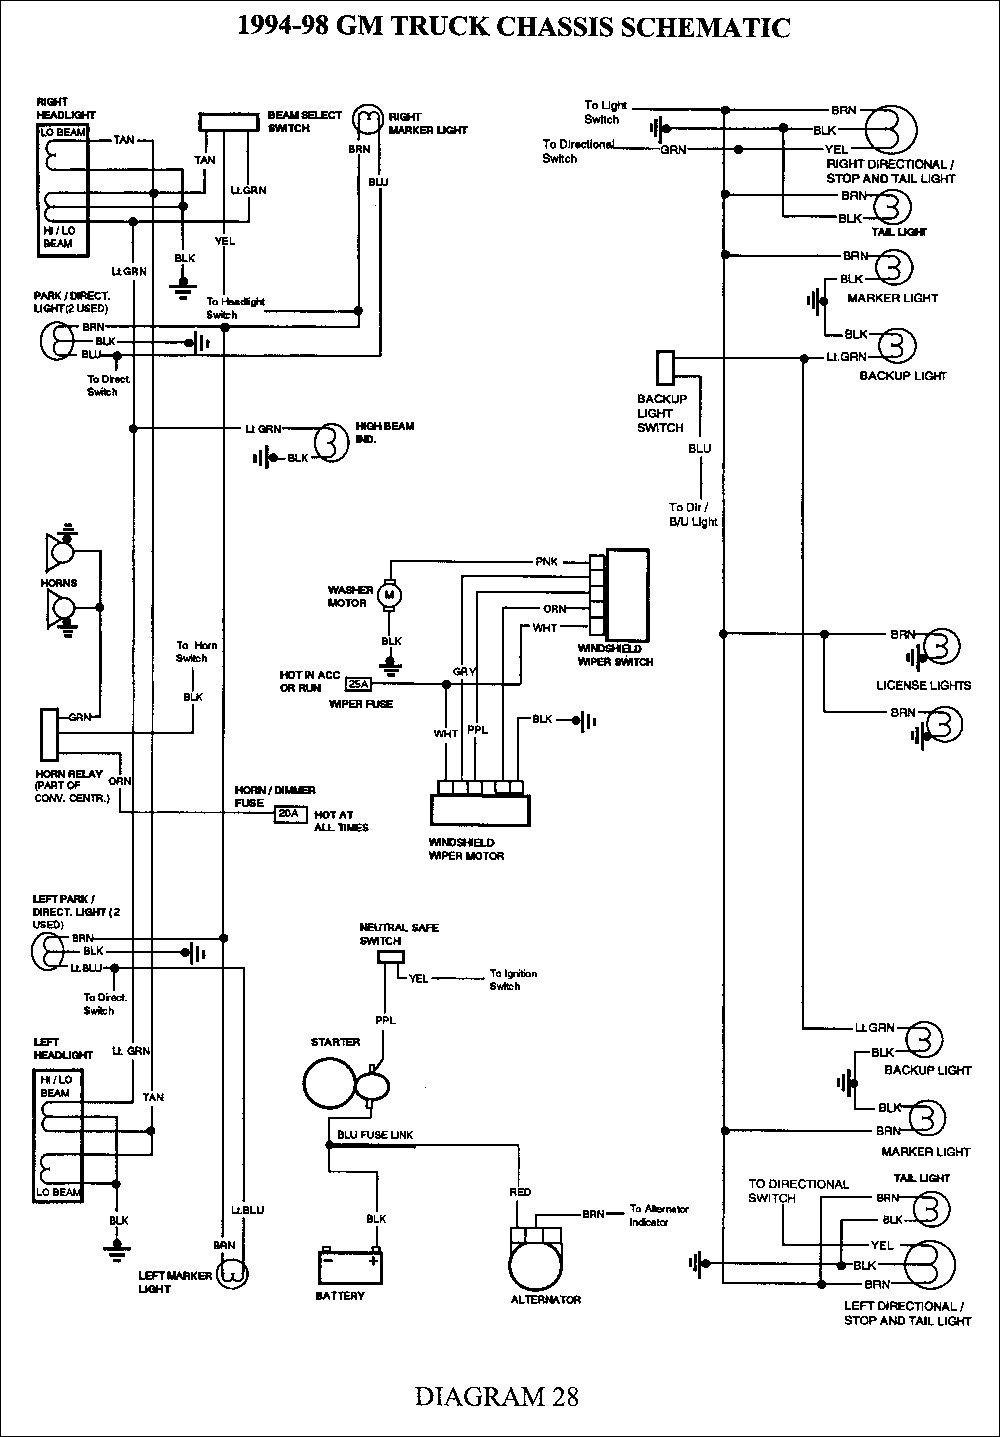 1995 S10 4x4 Wiring Diagram - Wiring Diagram